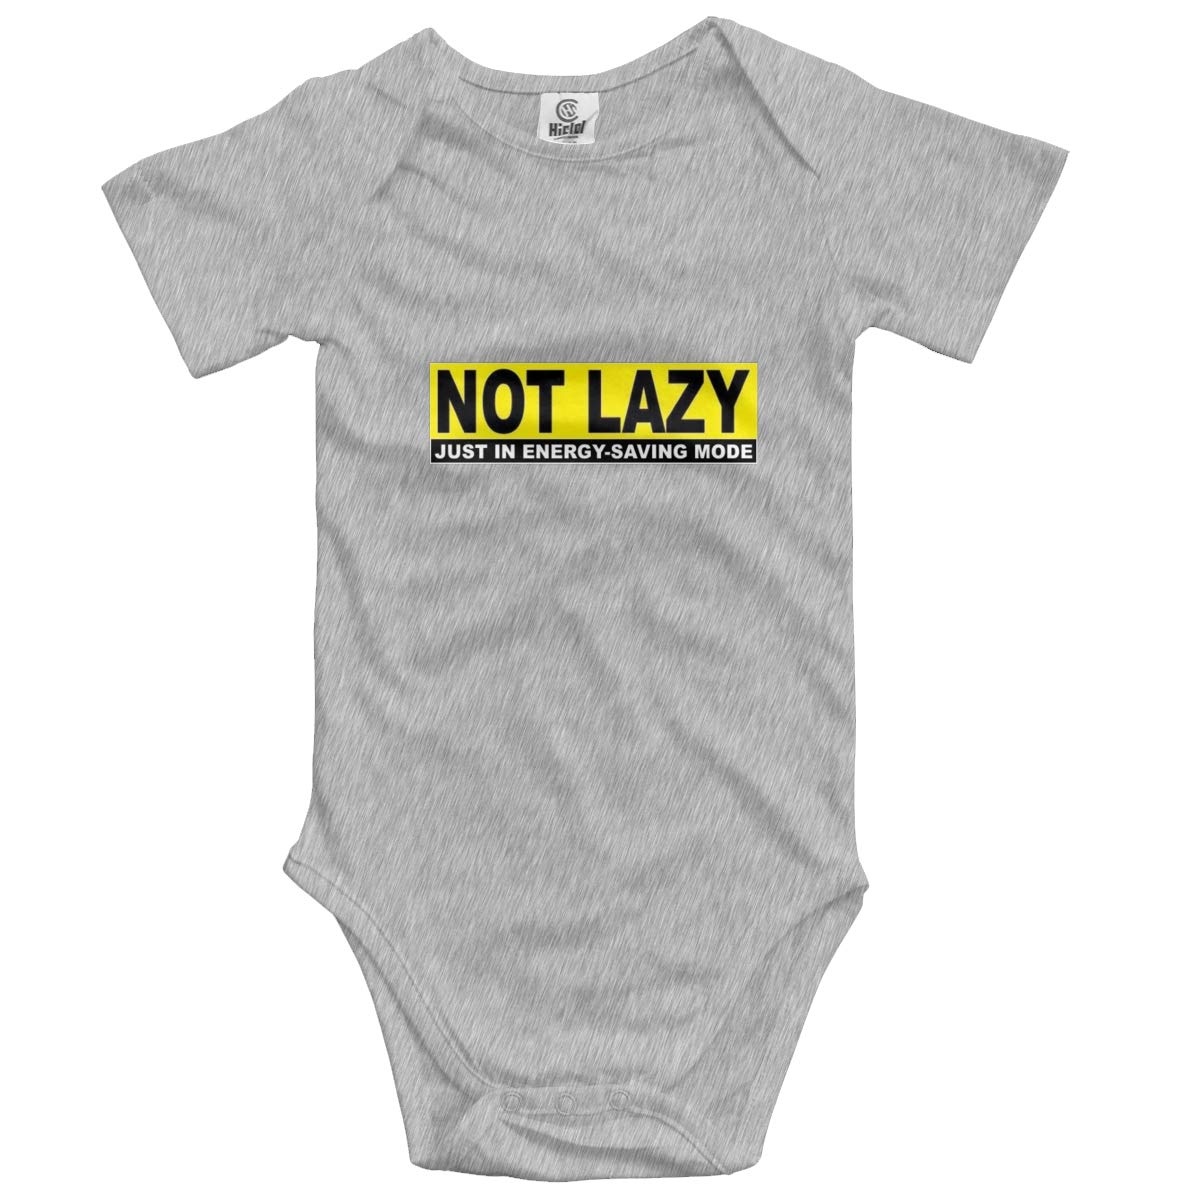 Not Lazy Sign Baby Romper 0-18 Months Newborn Baby Girls Boys Layette Rompers Black